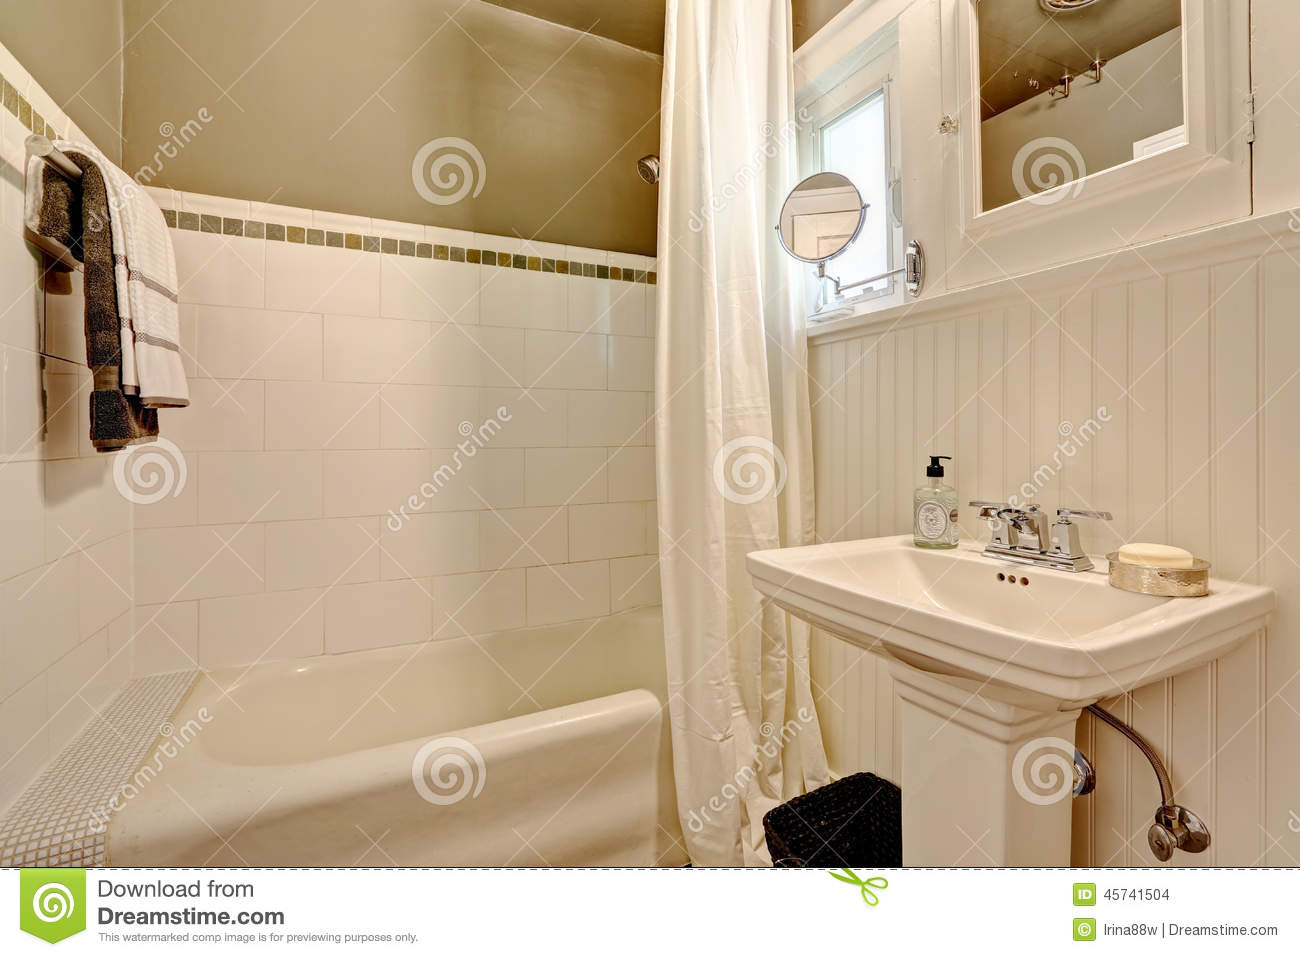 Bathroom With Plank Paneled Wall And Tile Trim Stock Photo Image